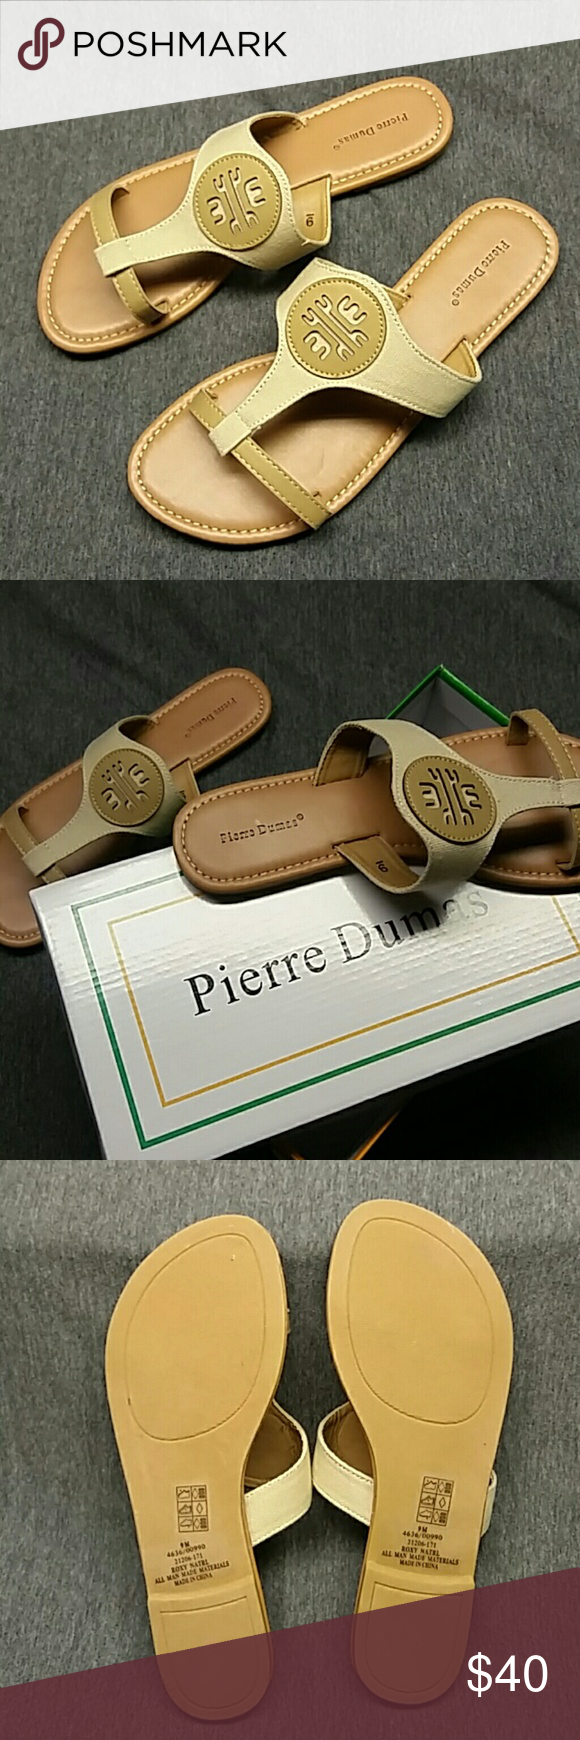 """Pierre Dumas """"Roxy"""" natural sandal Size 9. Brand new still in box. Pleazs use the offer button if interested. I ship same or next day. No holds and no trades. Pierre Dumas Shoes Sandals"""